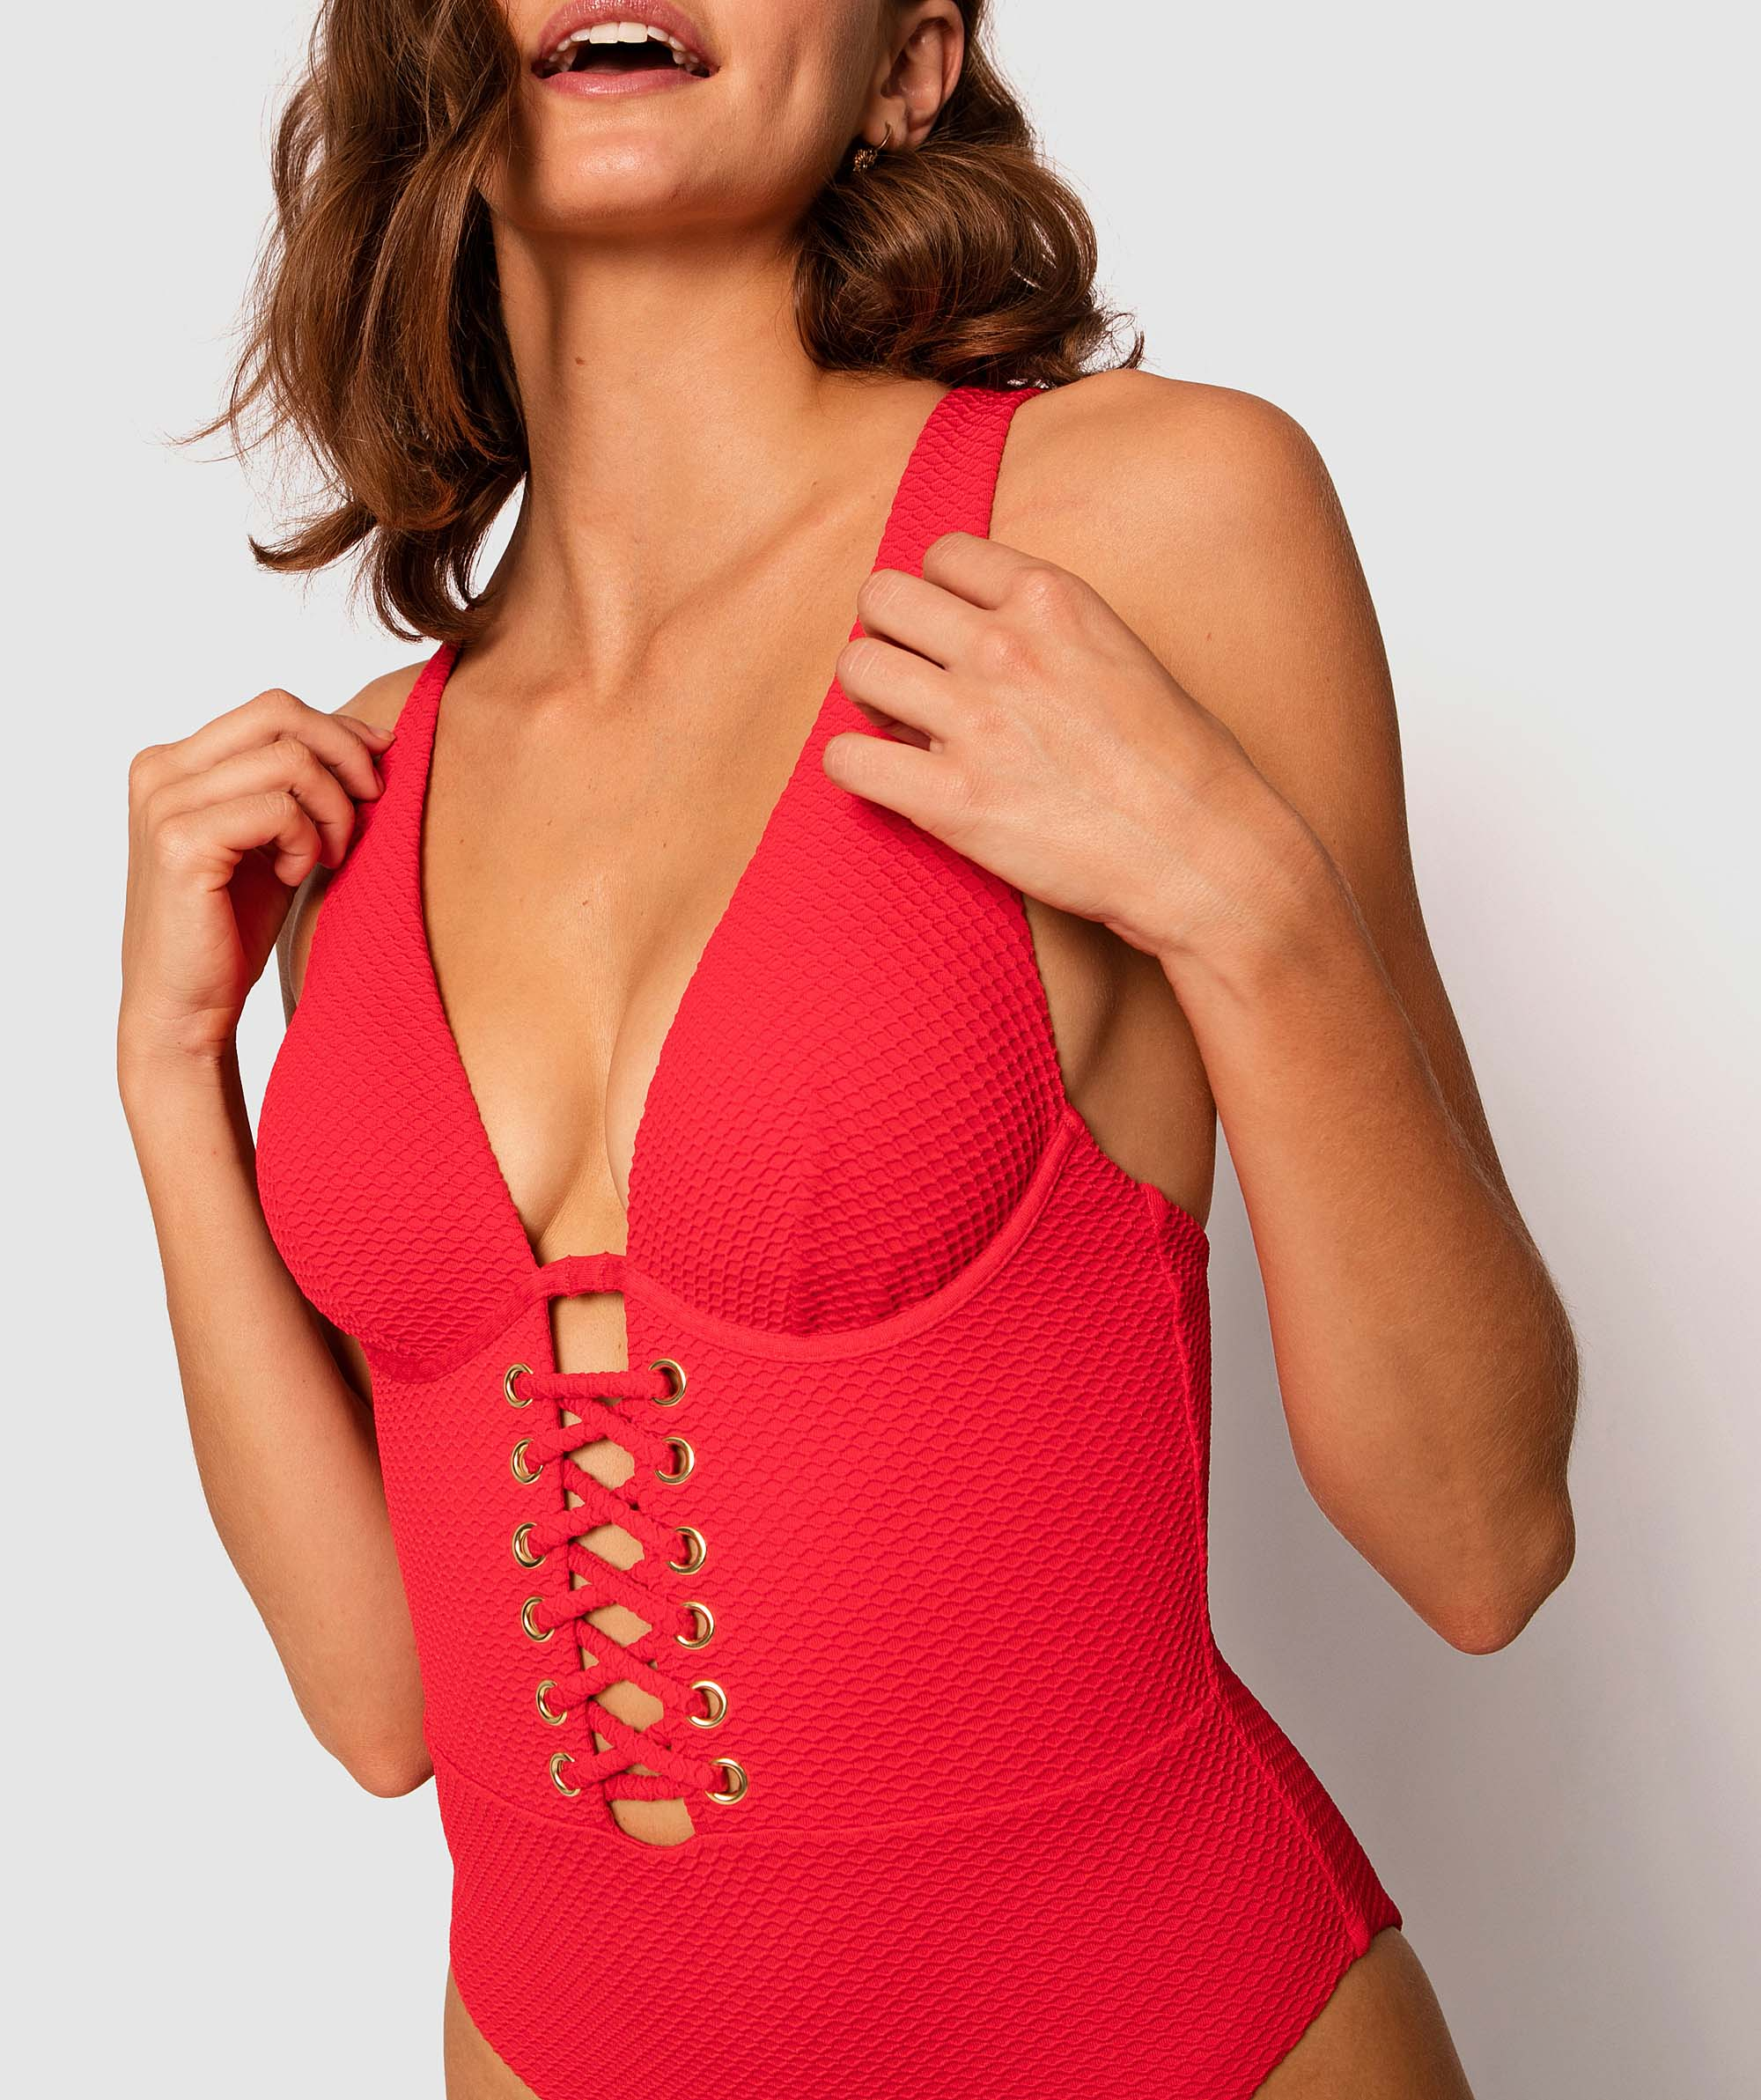 Vamp Bahamas Texture Rapture One Piece Swimsuit - Red